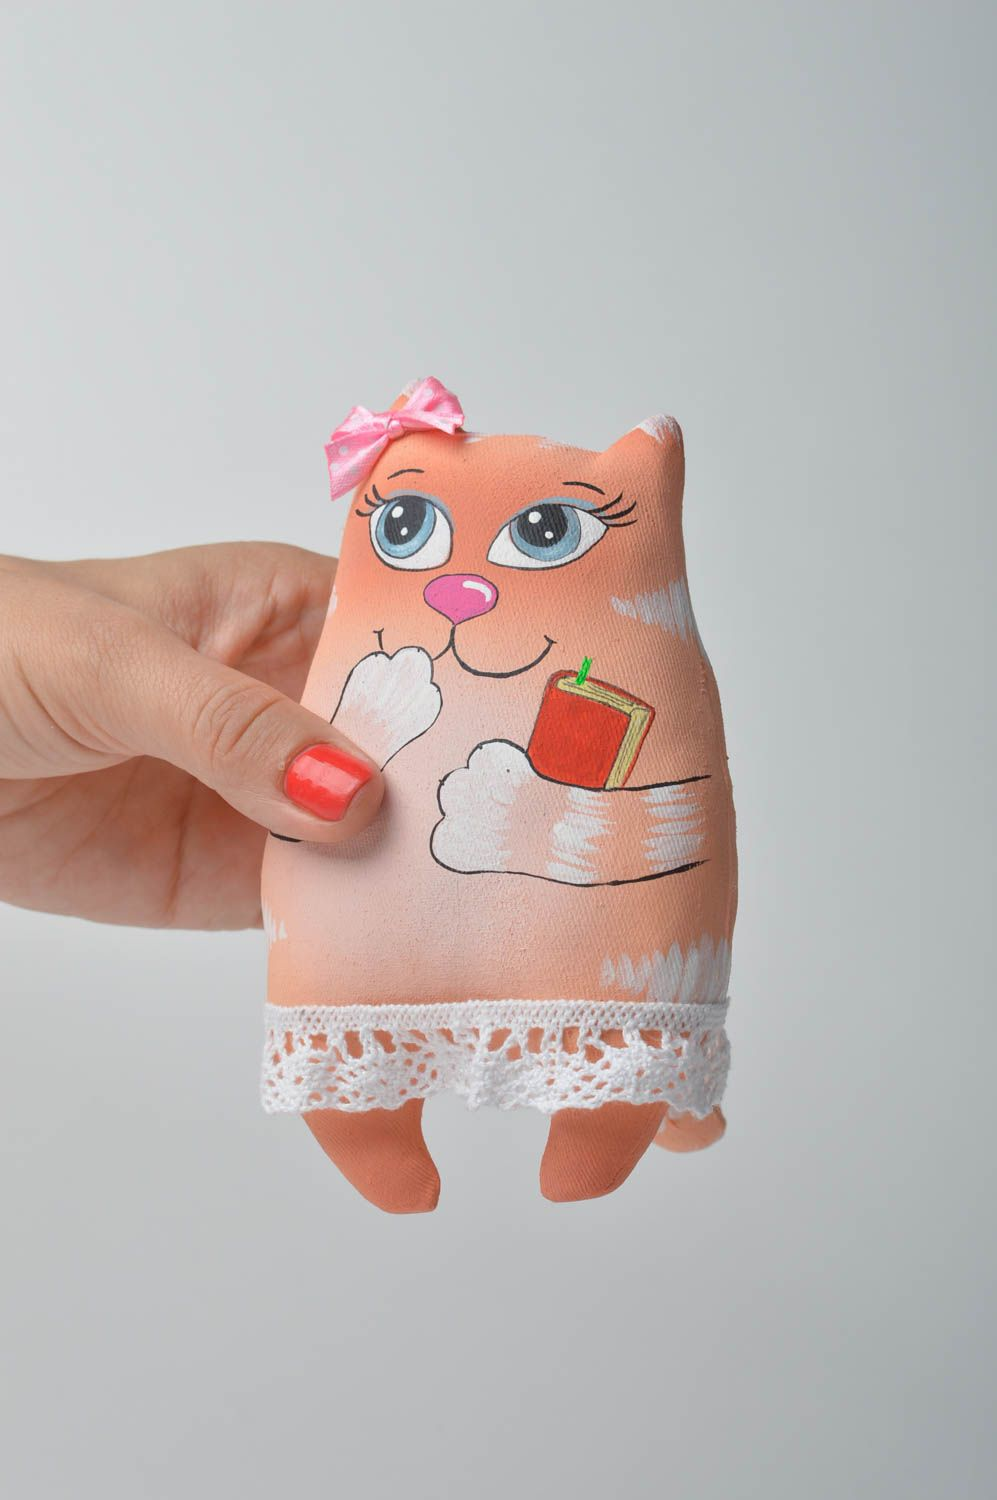 Beautiful handmade soft toy scented toy stuffed toy home decoration gift ideas photo 2